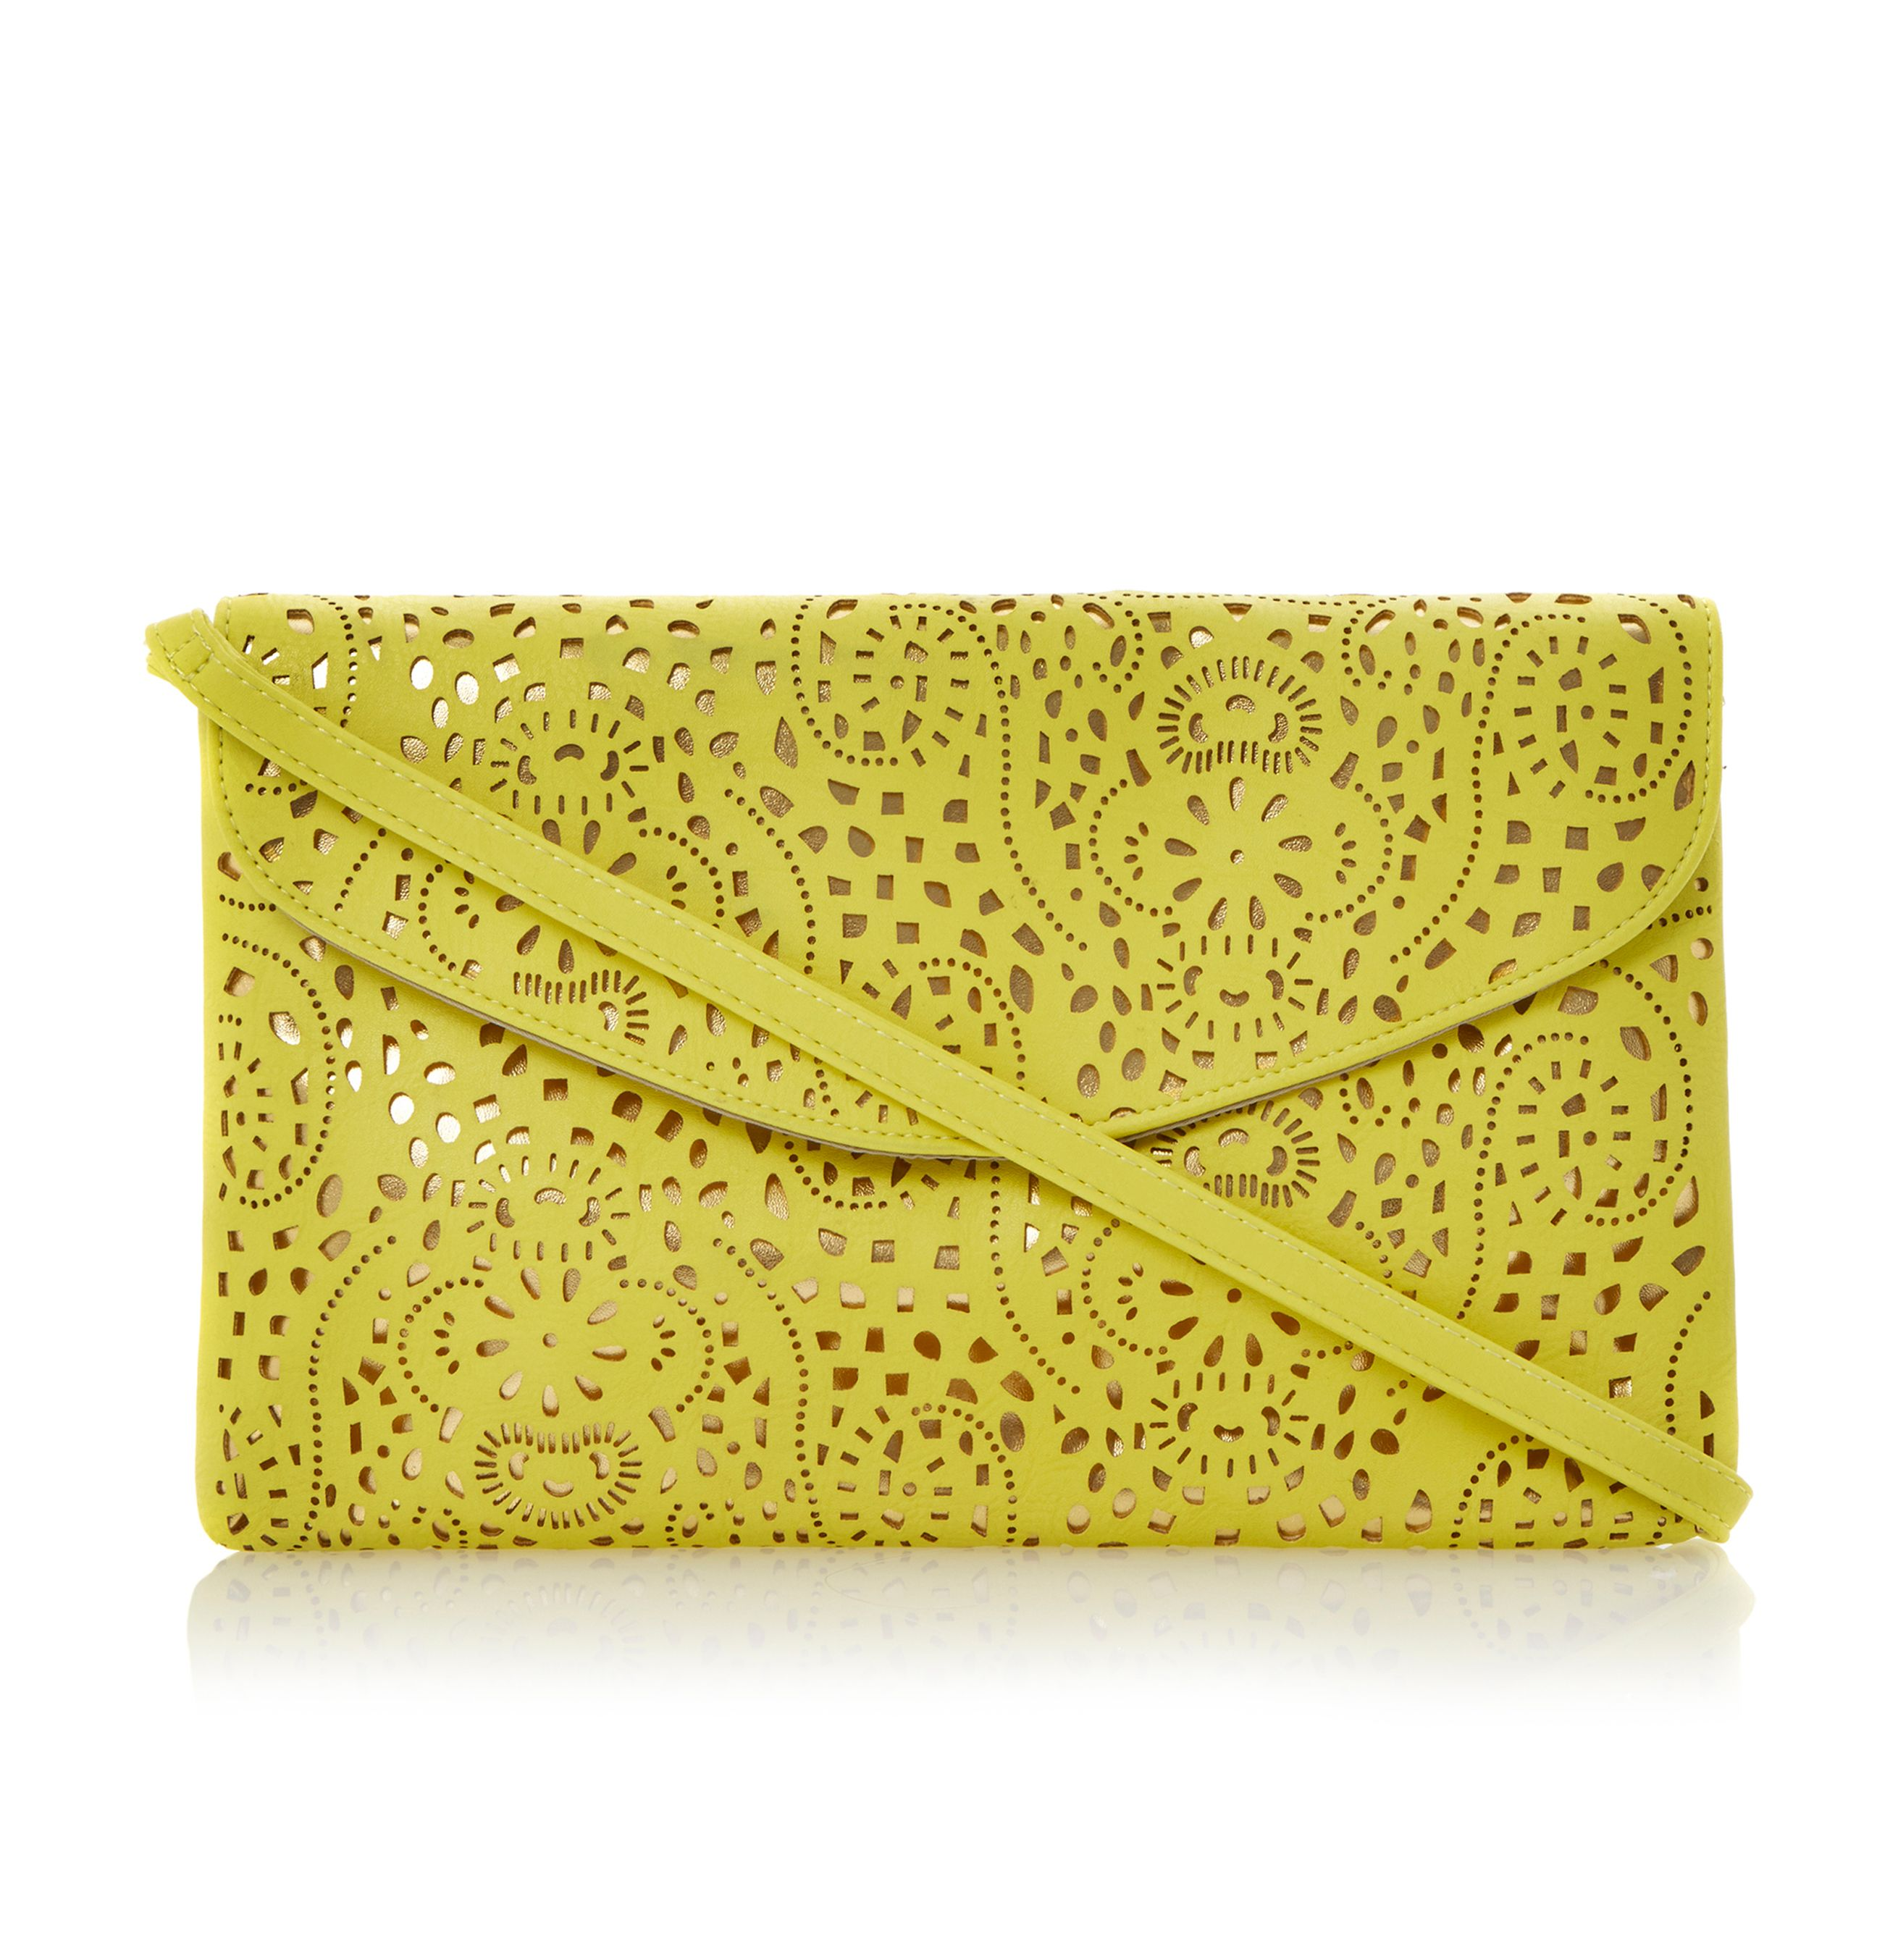 Blacee laser cut clutch bag